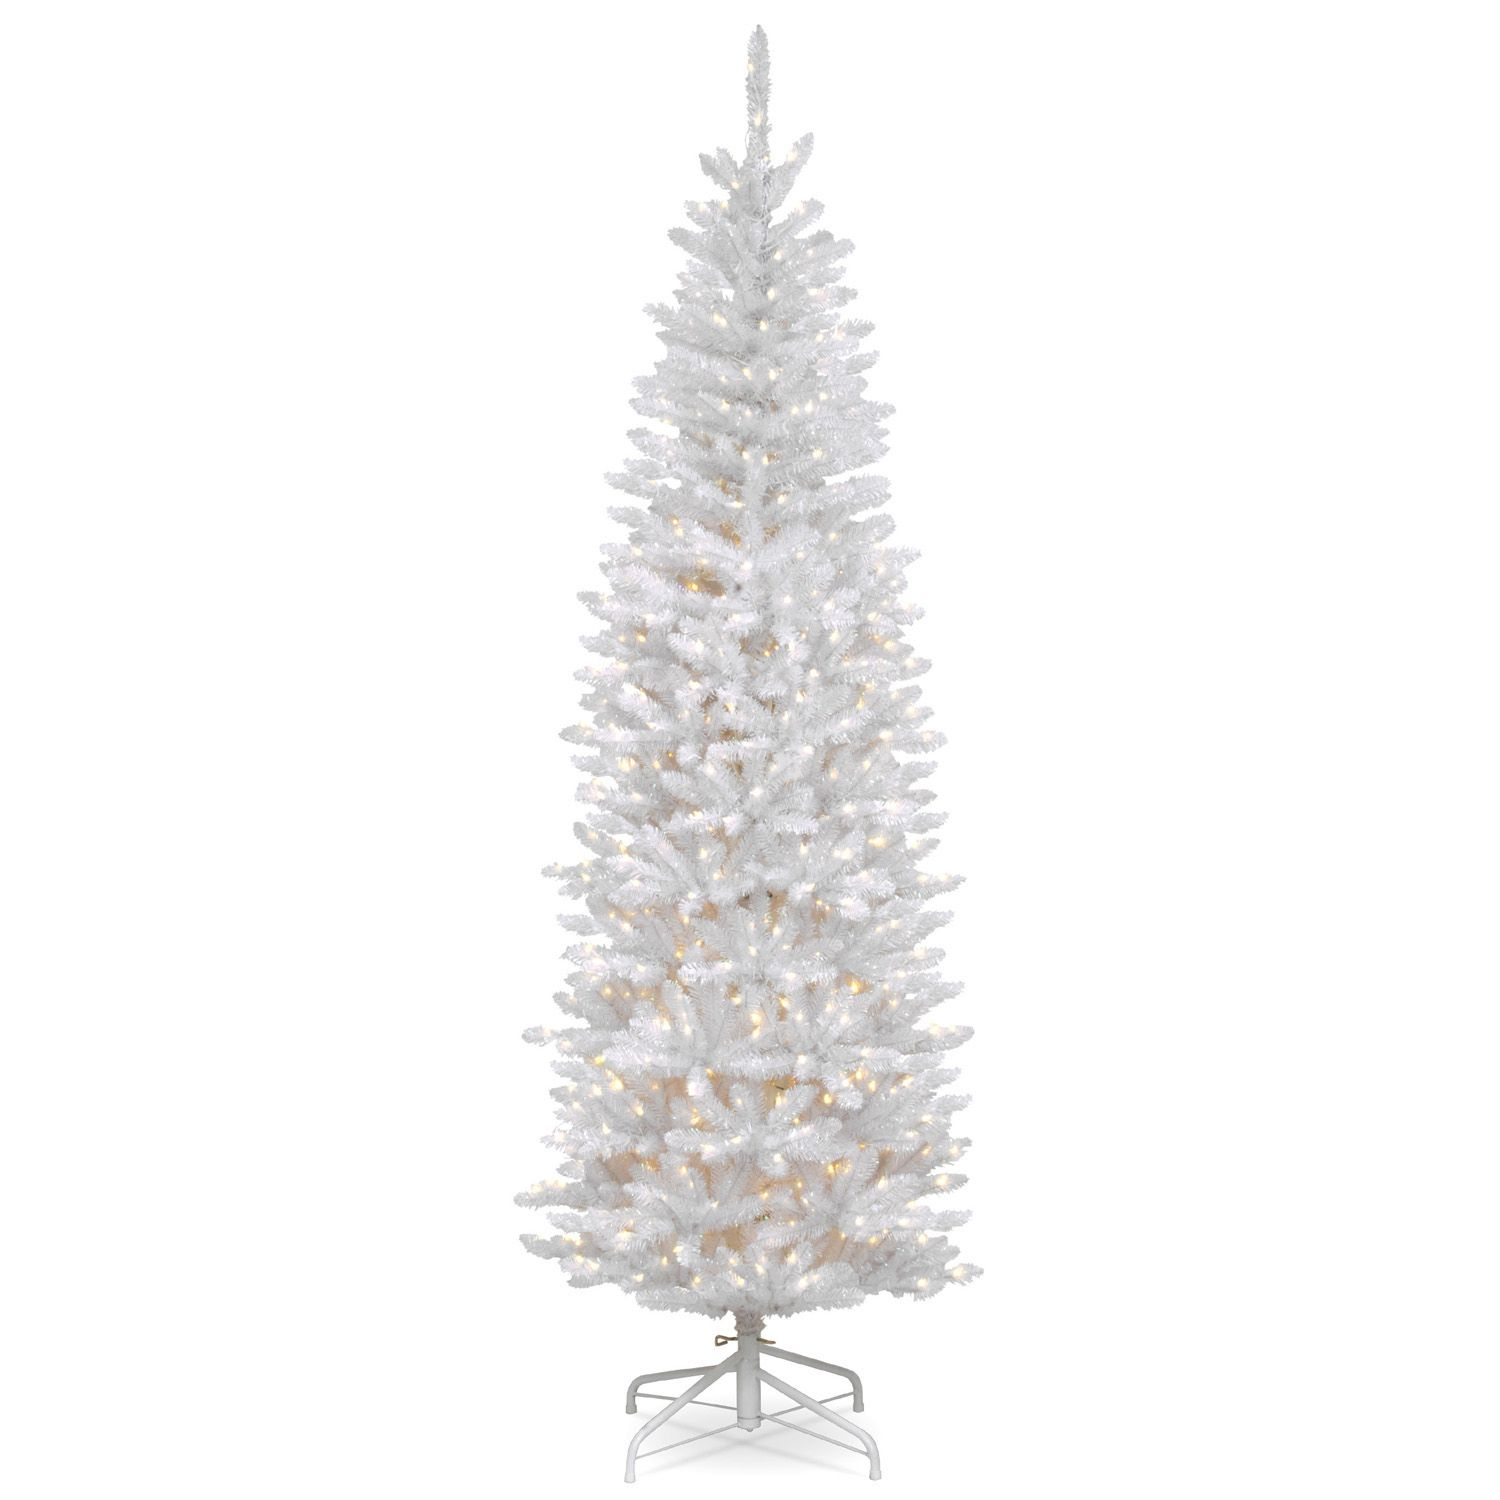 7 Ft. Kingswood White Fir Pencil Artificial Christmas Tree